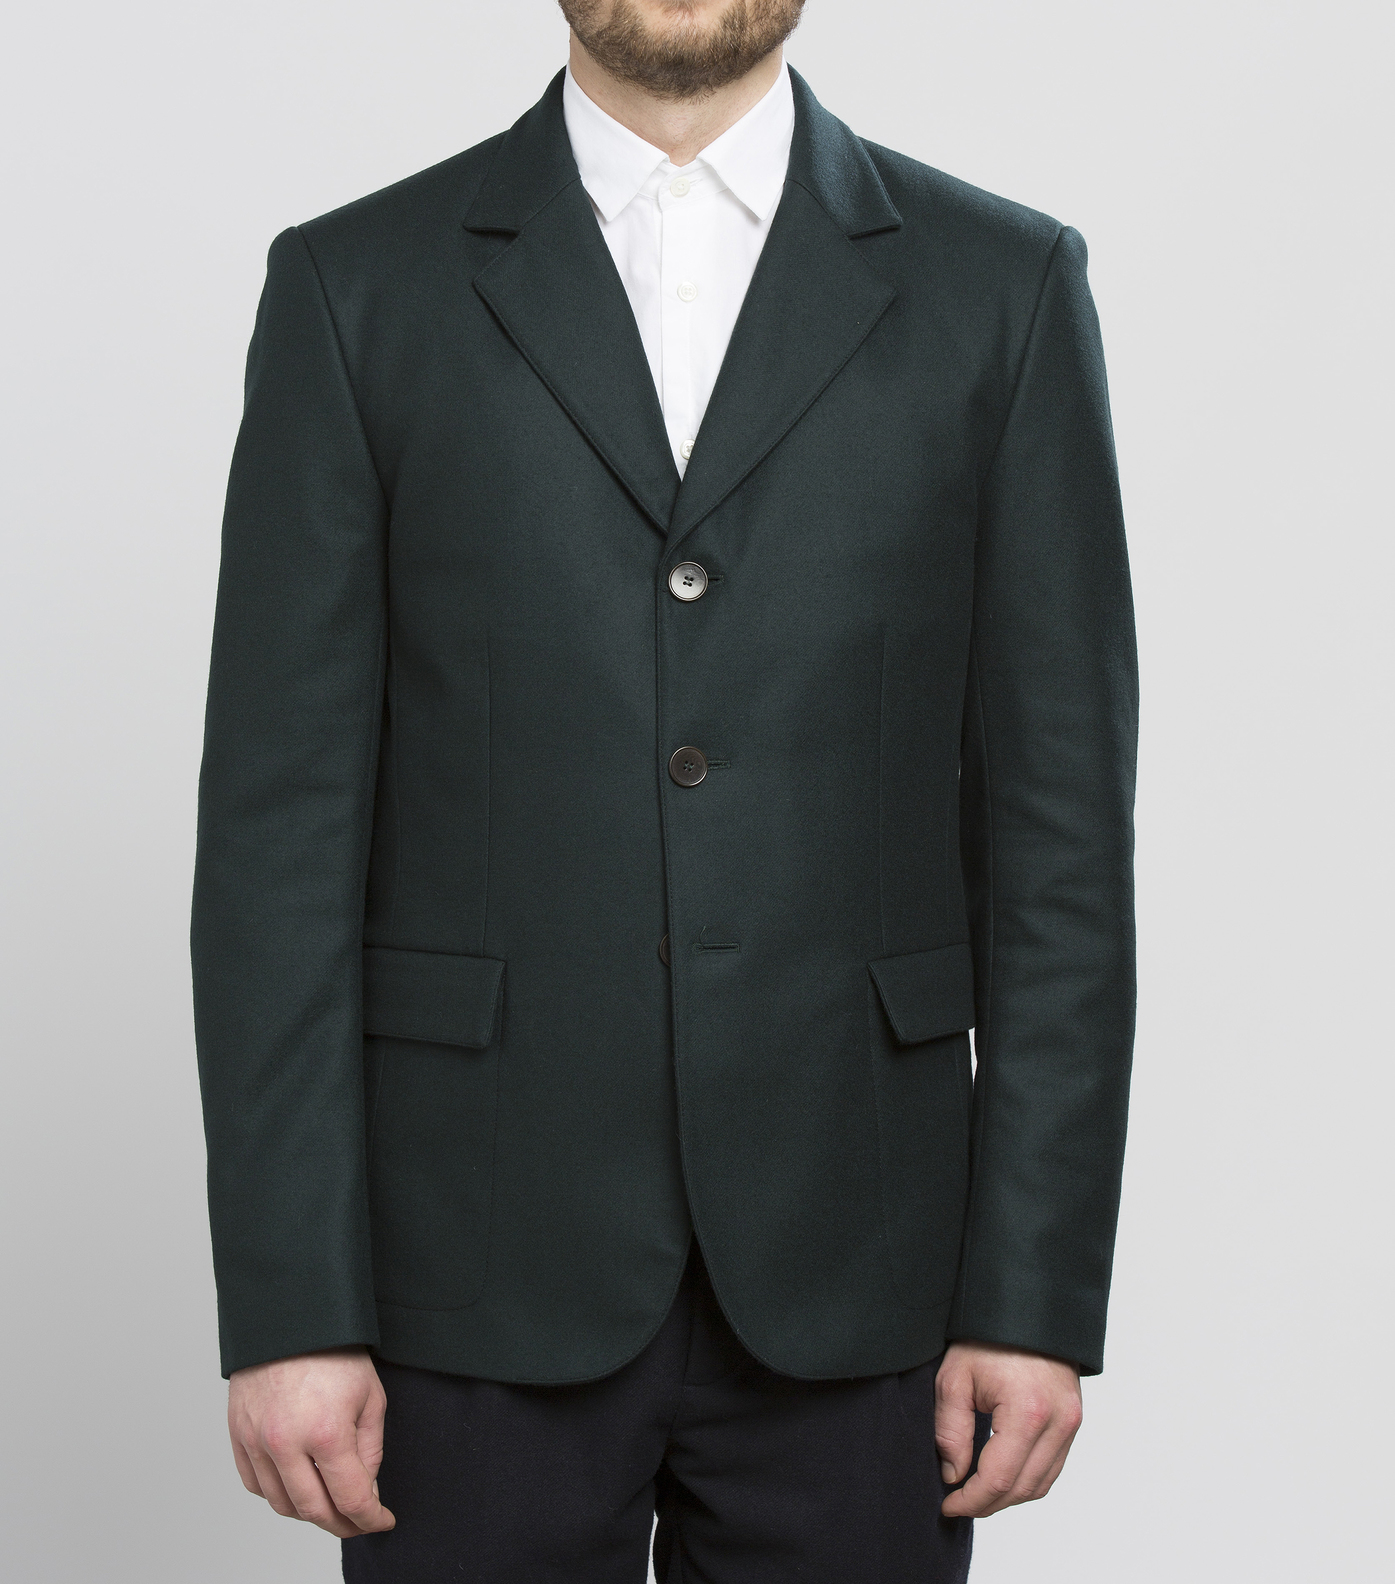 SUIT JACKET PROTOT  - Green